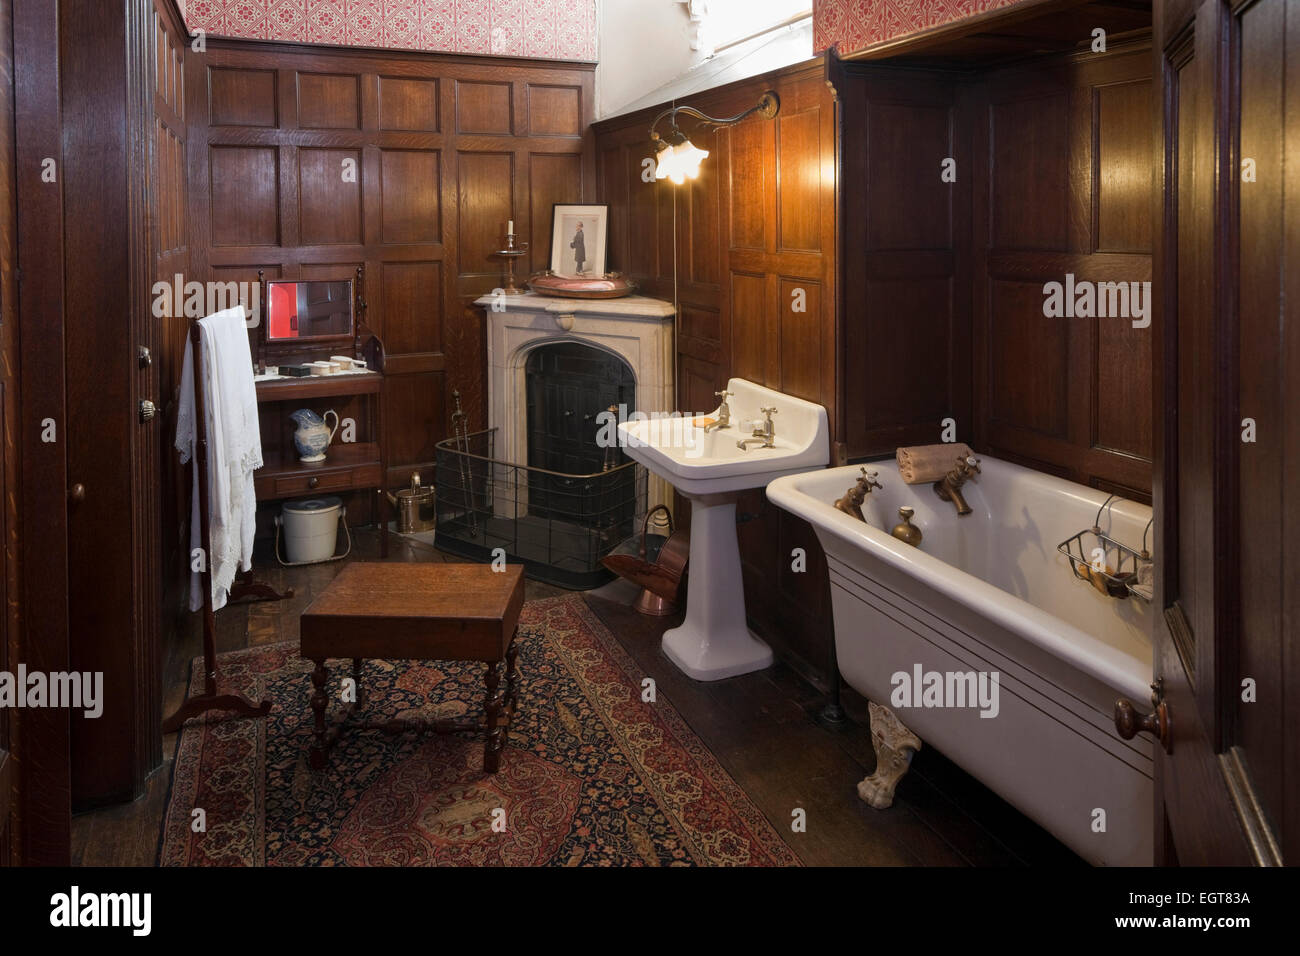 Wood Panelling Victorian High Resolution Stock Photography And Images Alamy